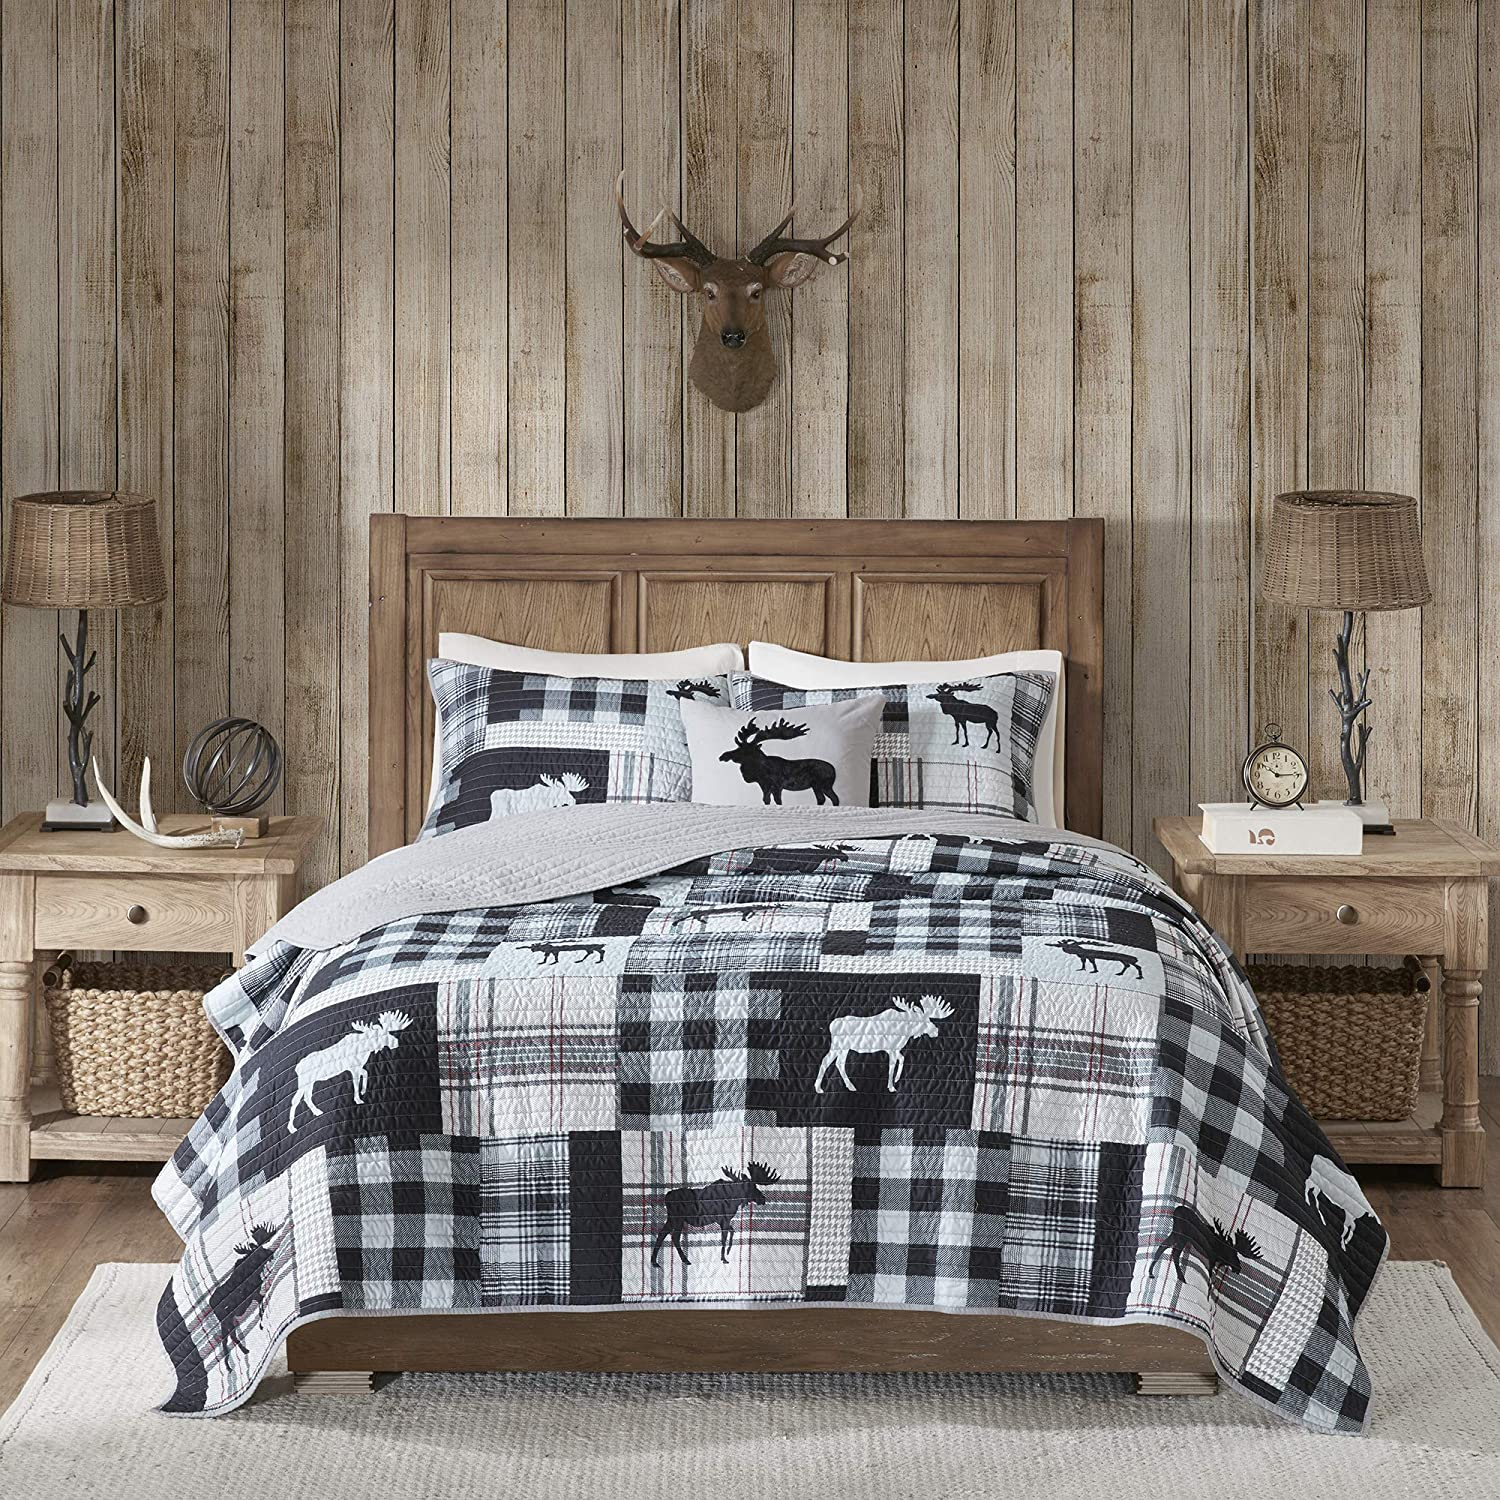 Woolrich Quilt Set, King/Cal King, Sweetwater Black/Grey